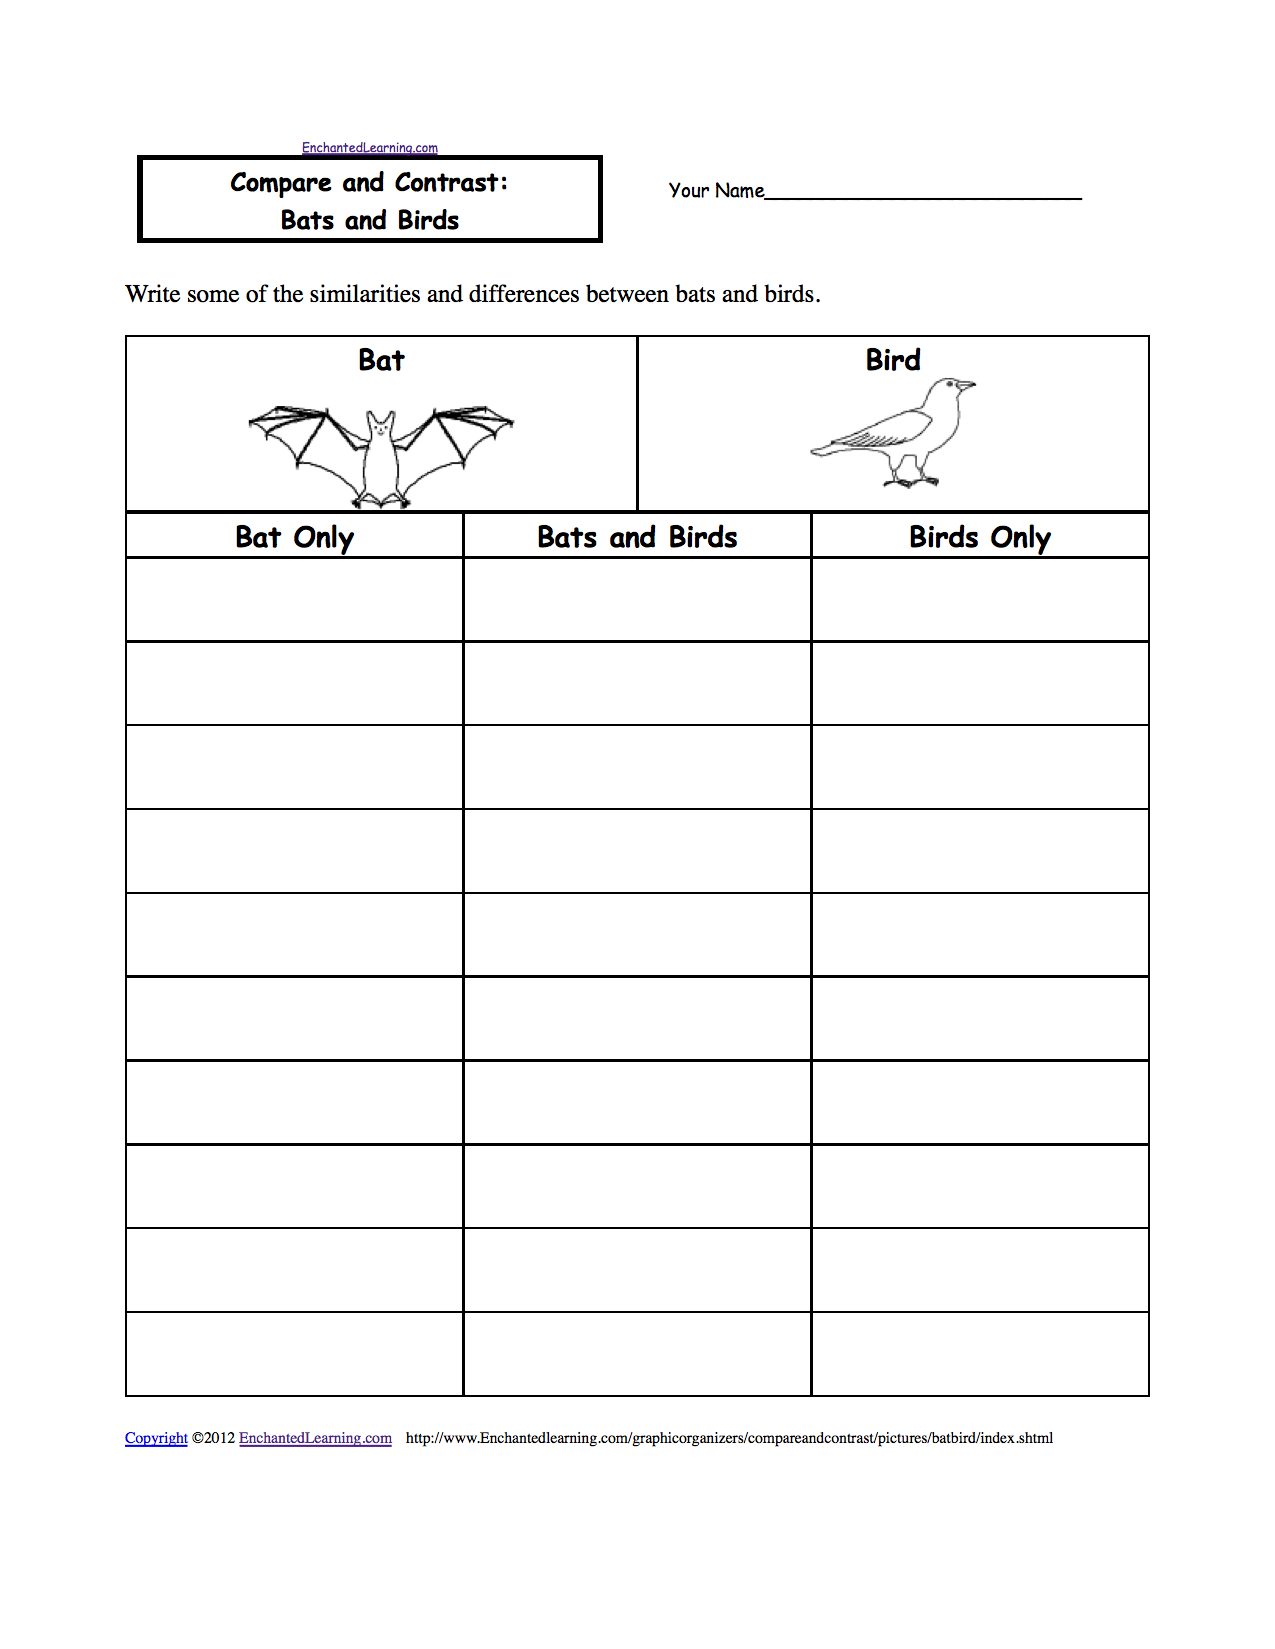 Compare and Contrast Worksheets to Print EnchantedLearning – Compare and Contrast Worksheets 4th Grade